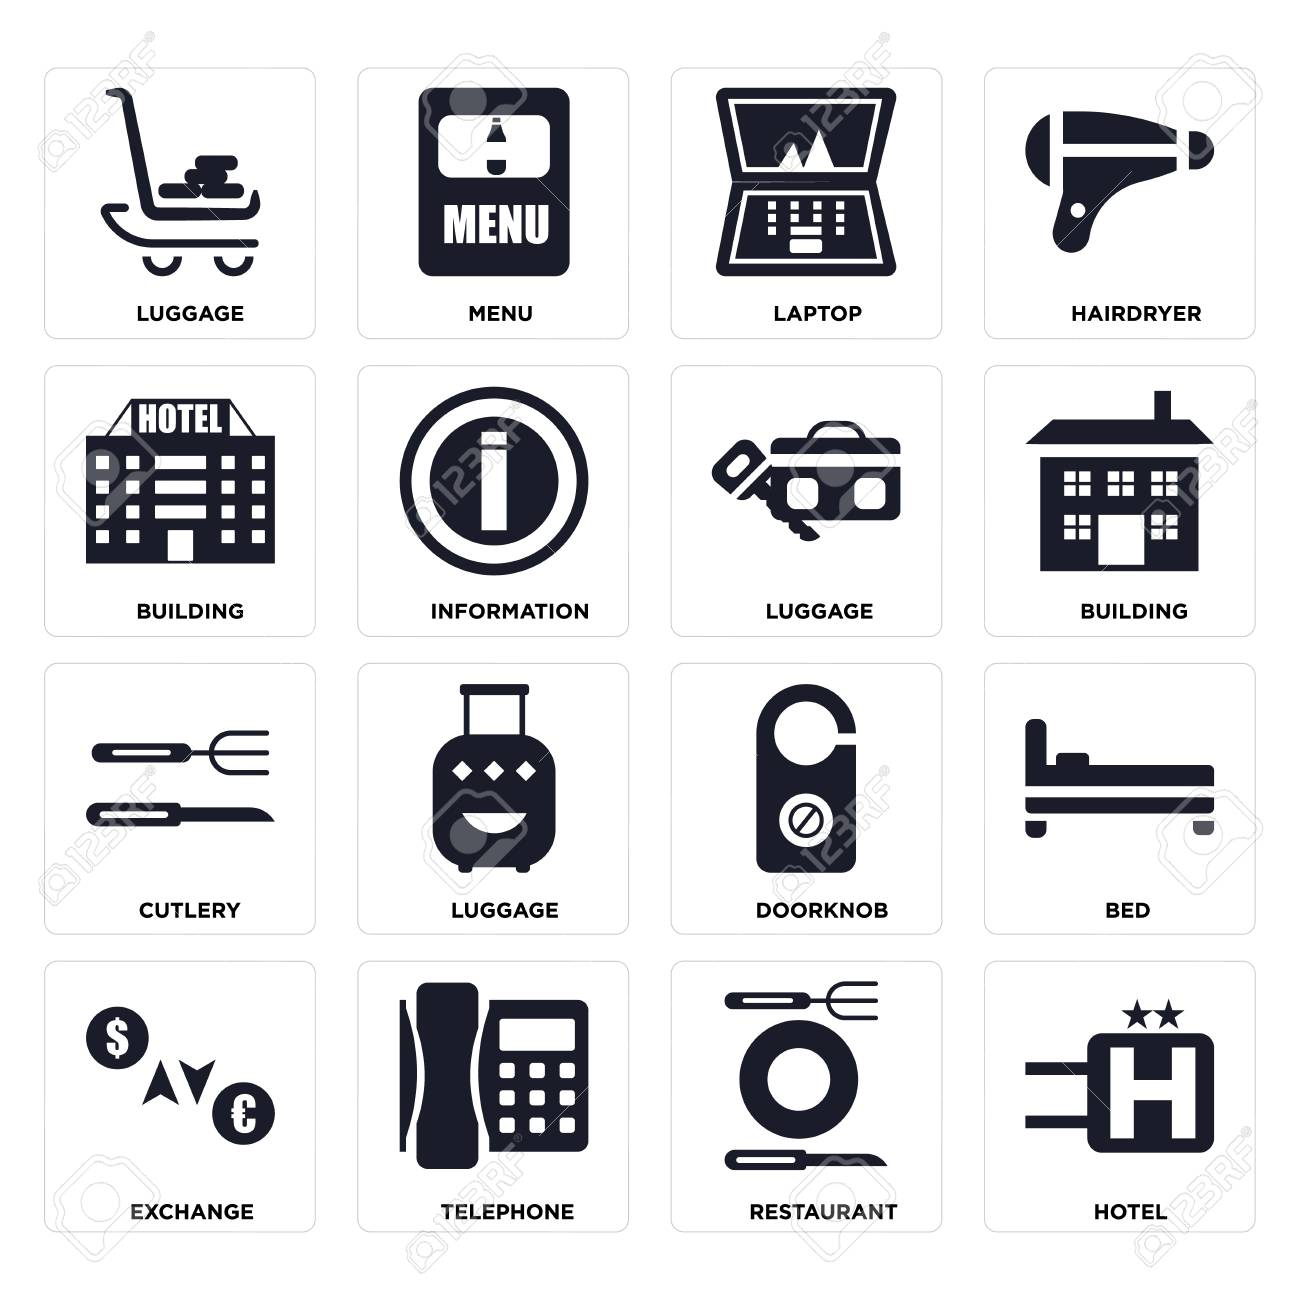 Set Of 16 icons such as Hotel, Restaurant, Telephone, Exchange, Bed, Luggage, Building, Cutlery on transparent background, pixel perfect - 116184581